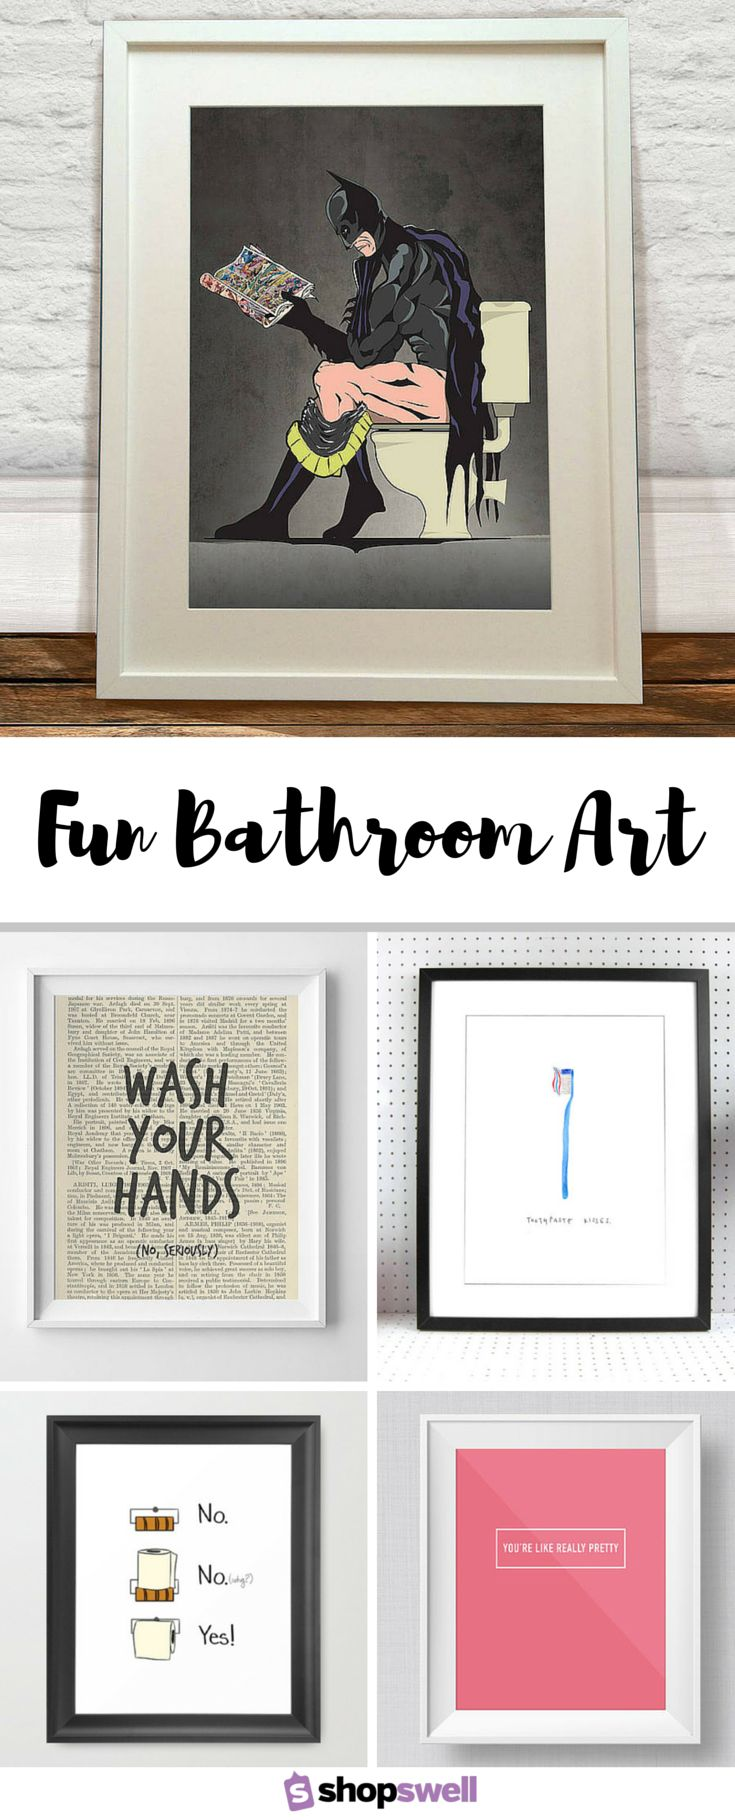 Wall pictures for bathroom - Fun Bathroom Art